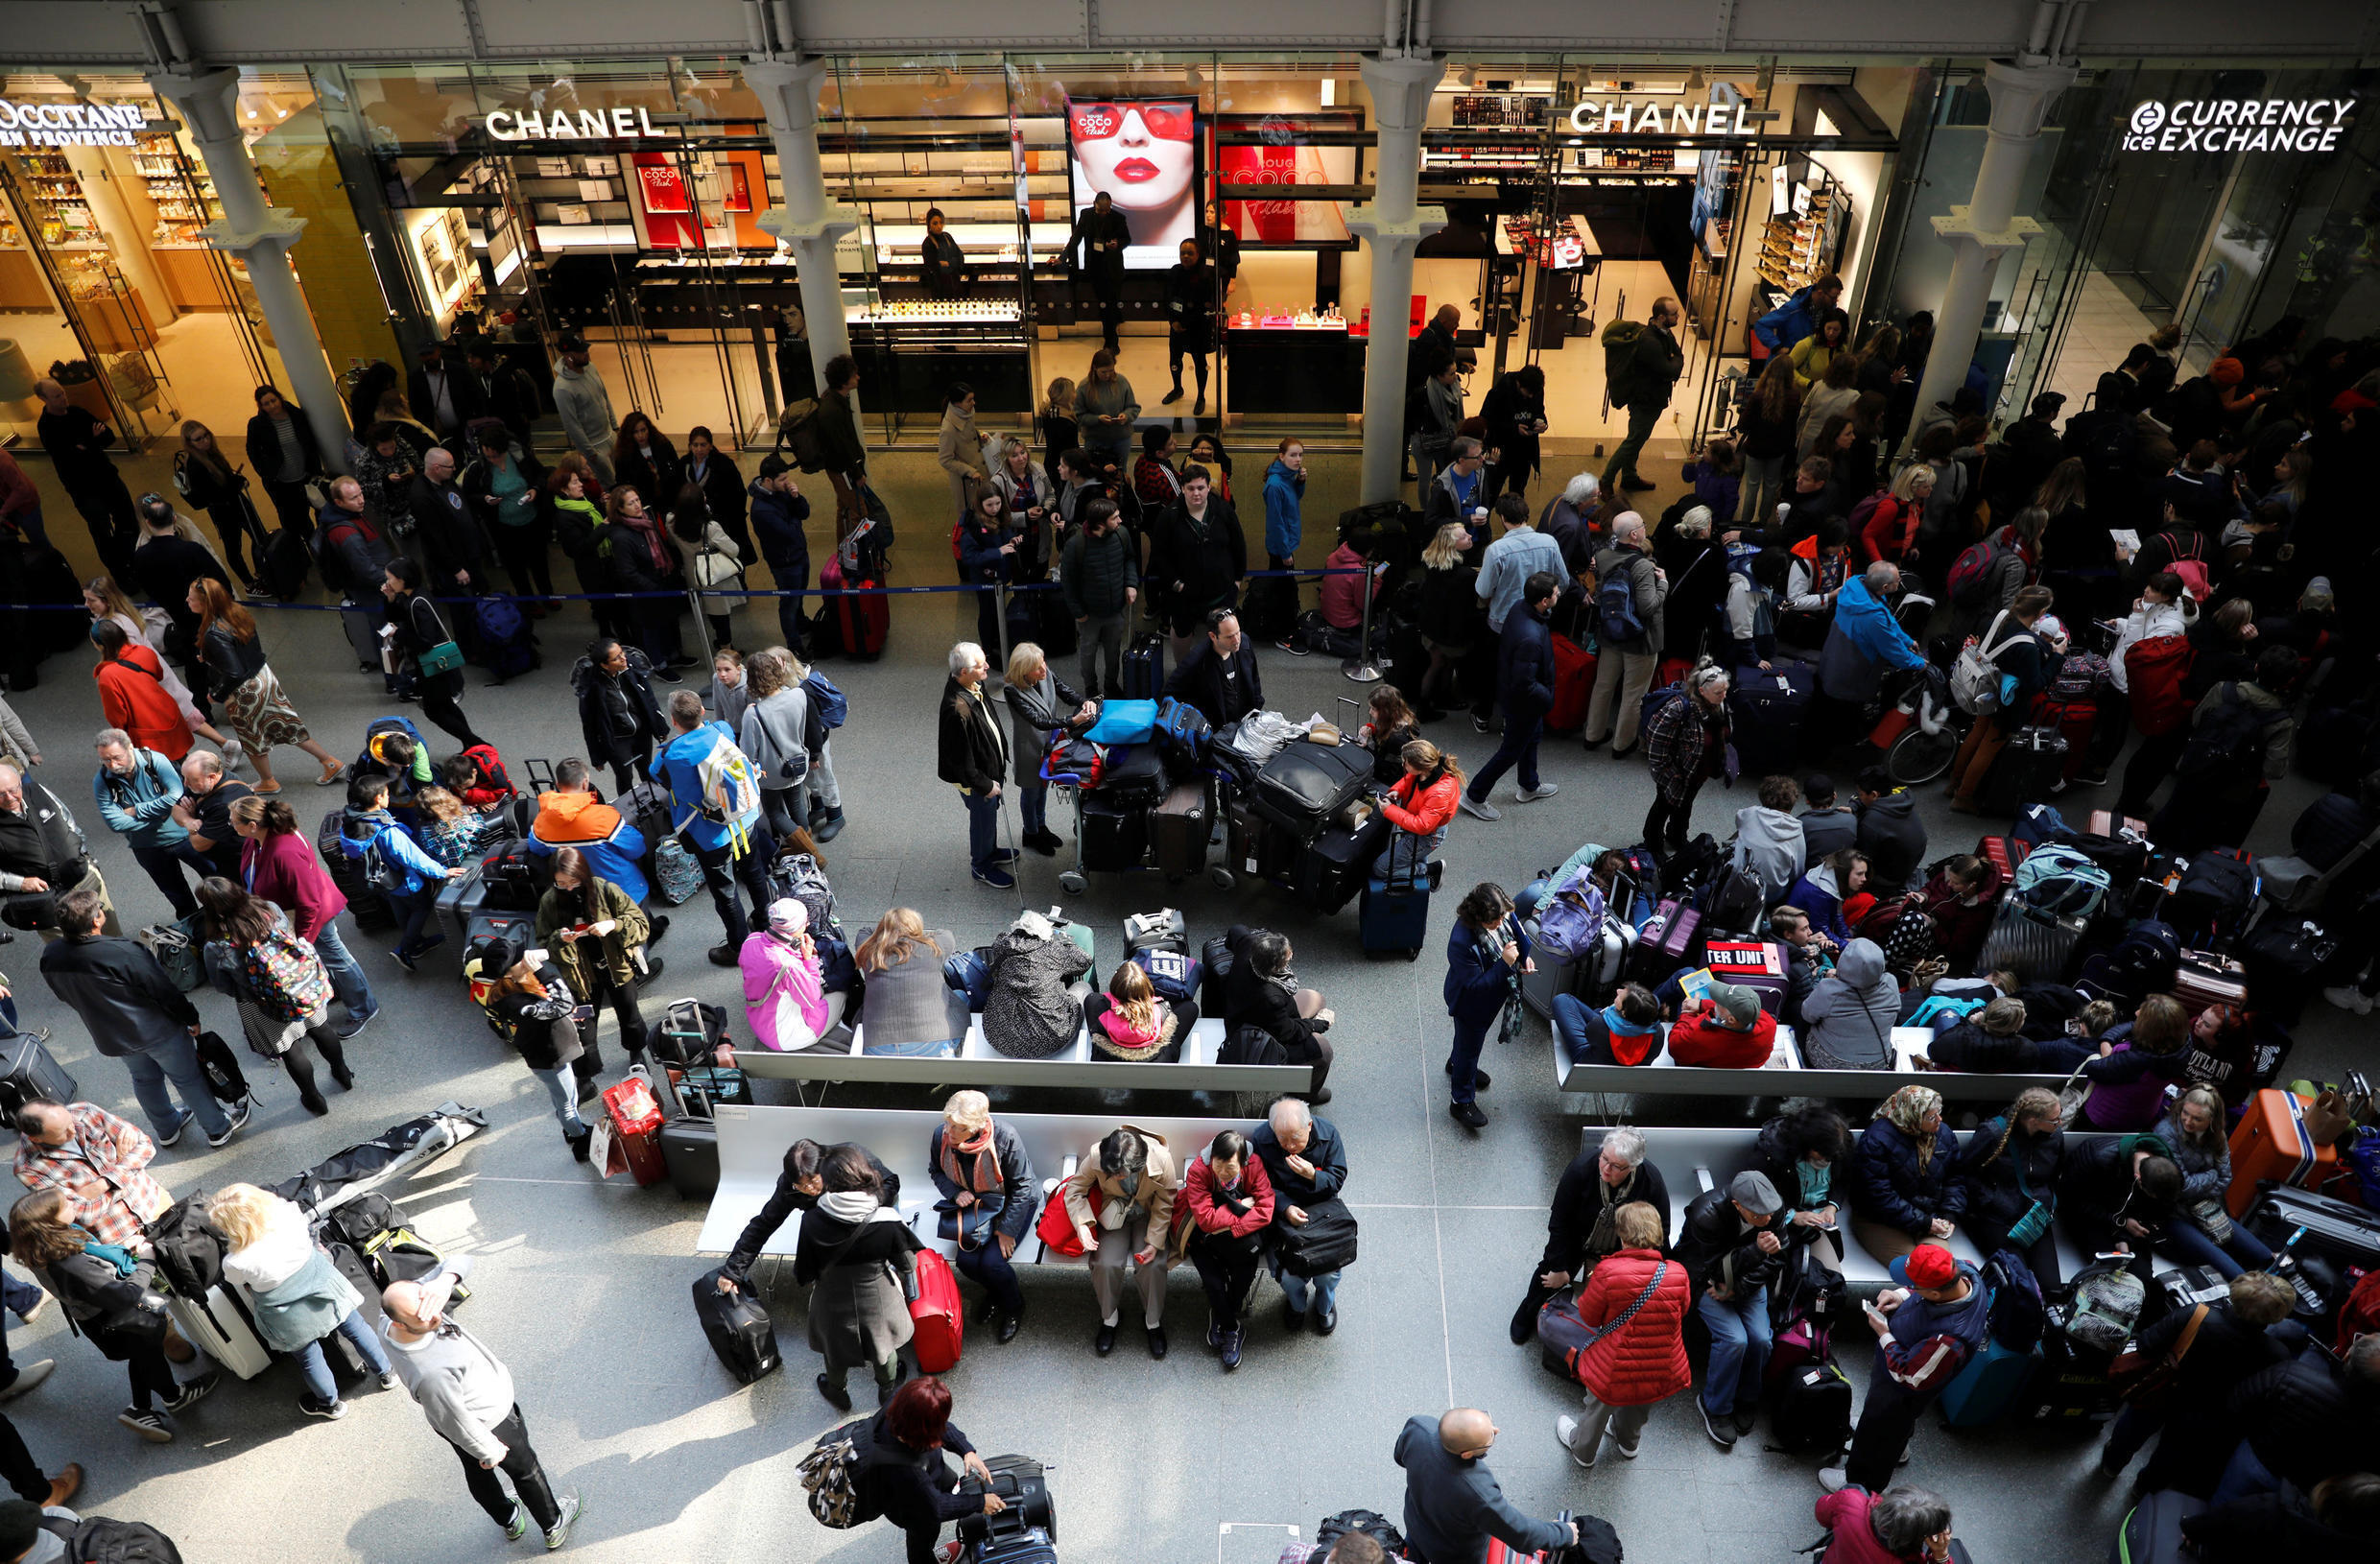 People wait due to Eurostar delays at St Pancras International railway station in London, UK, 30 March 2019.